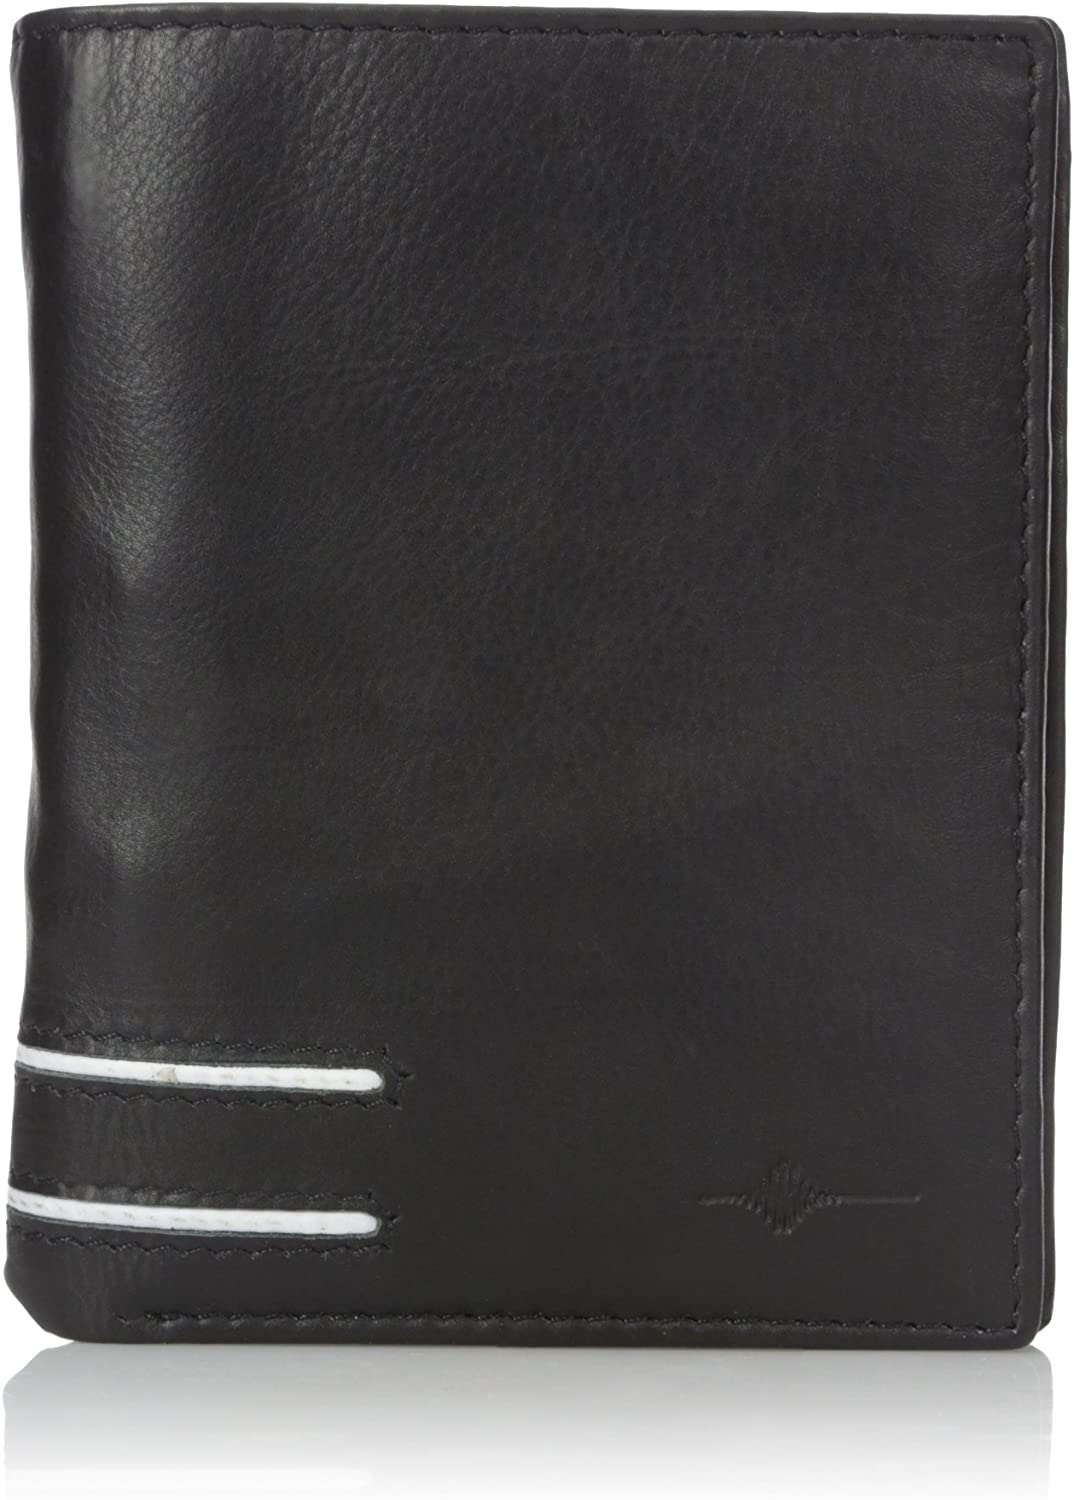 Buxton Men's Luciano RFID Blocking Deluxe Two-fold